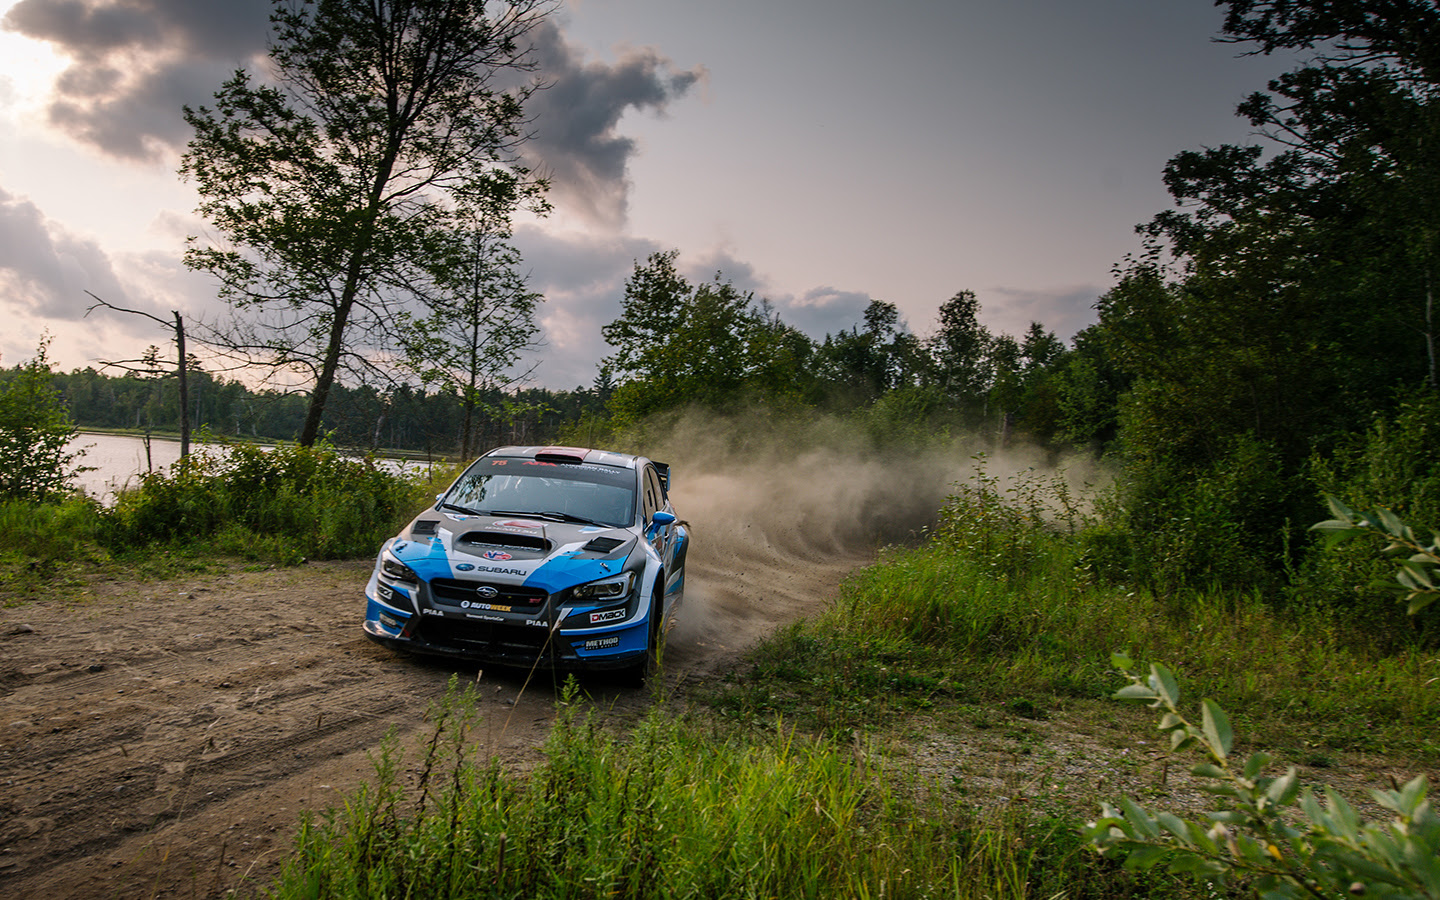 Higgins dominated the fast technical roads of the 2018 Ojibwe Forests Rally